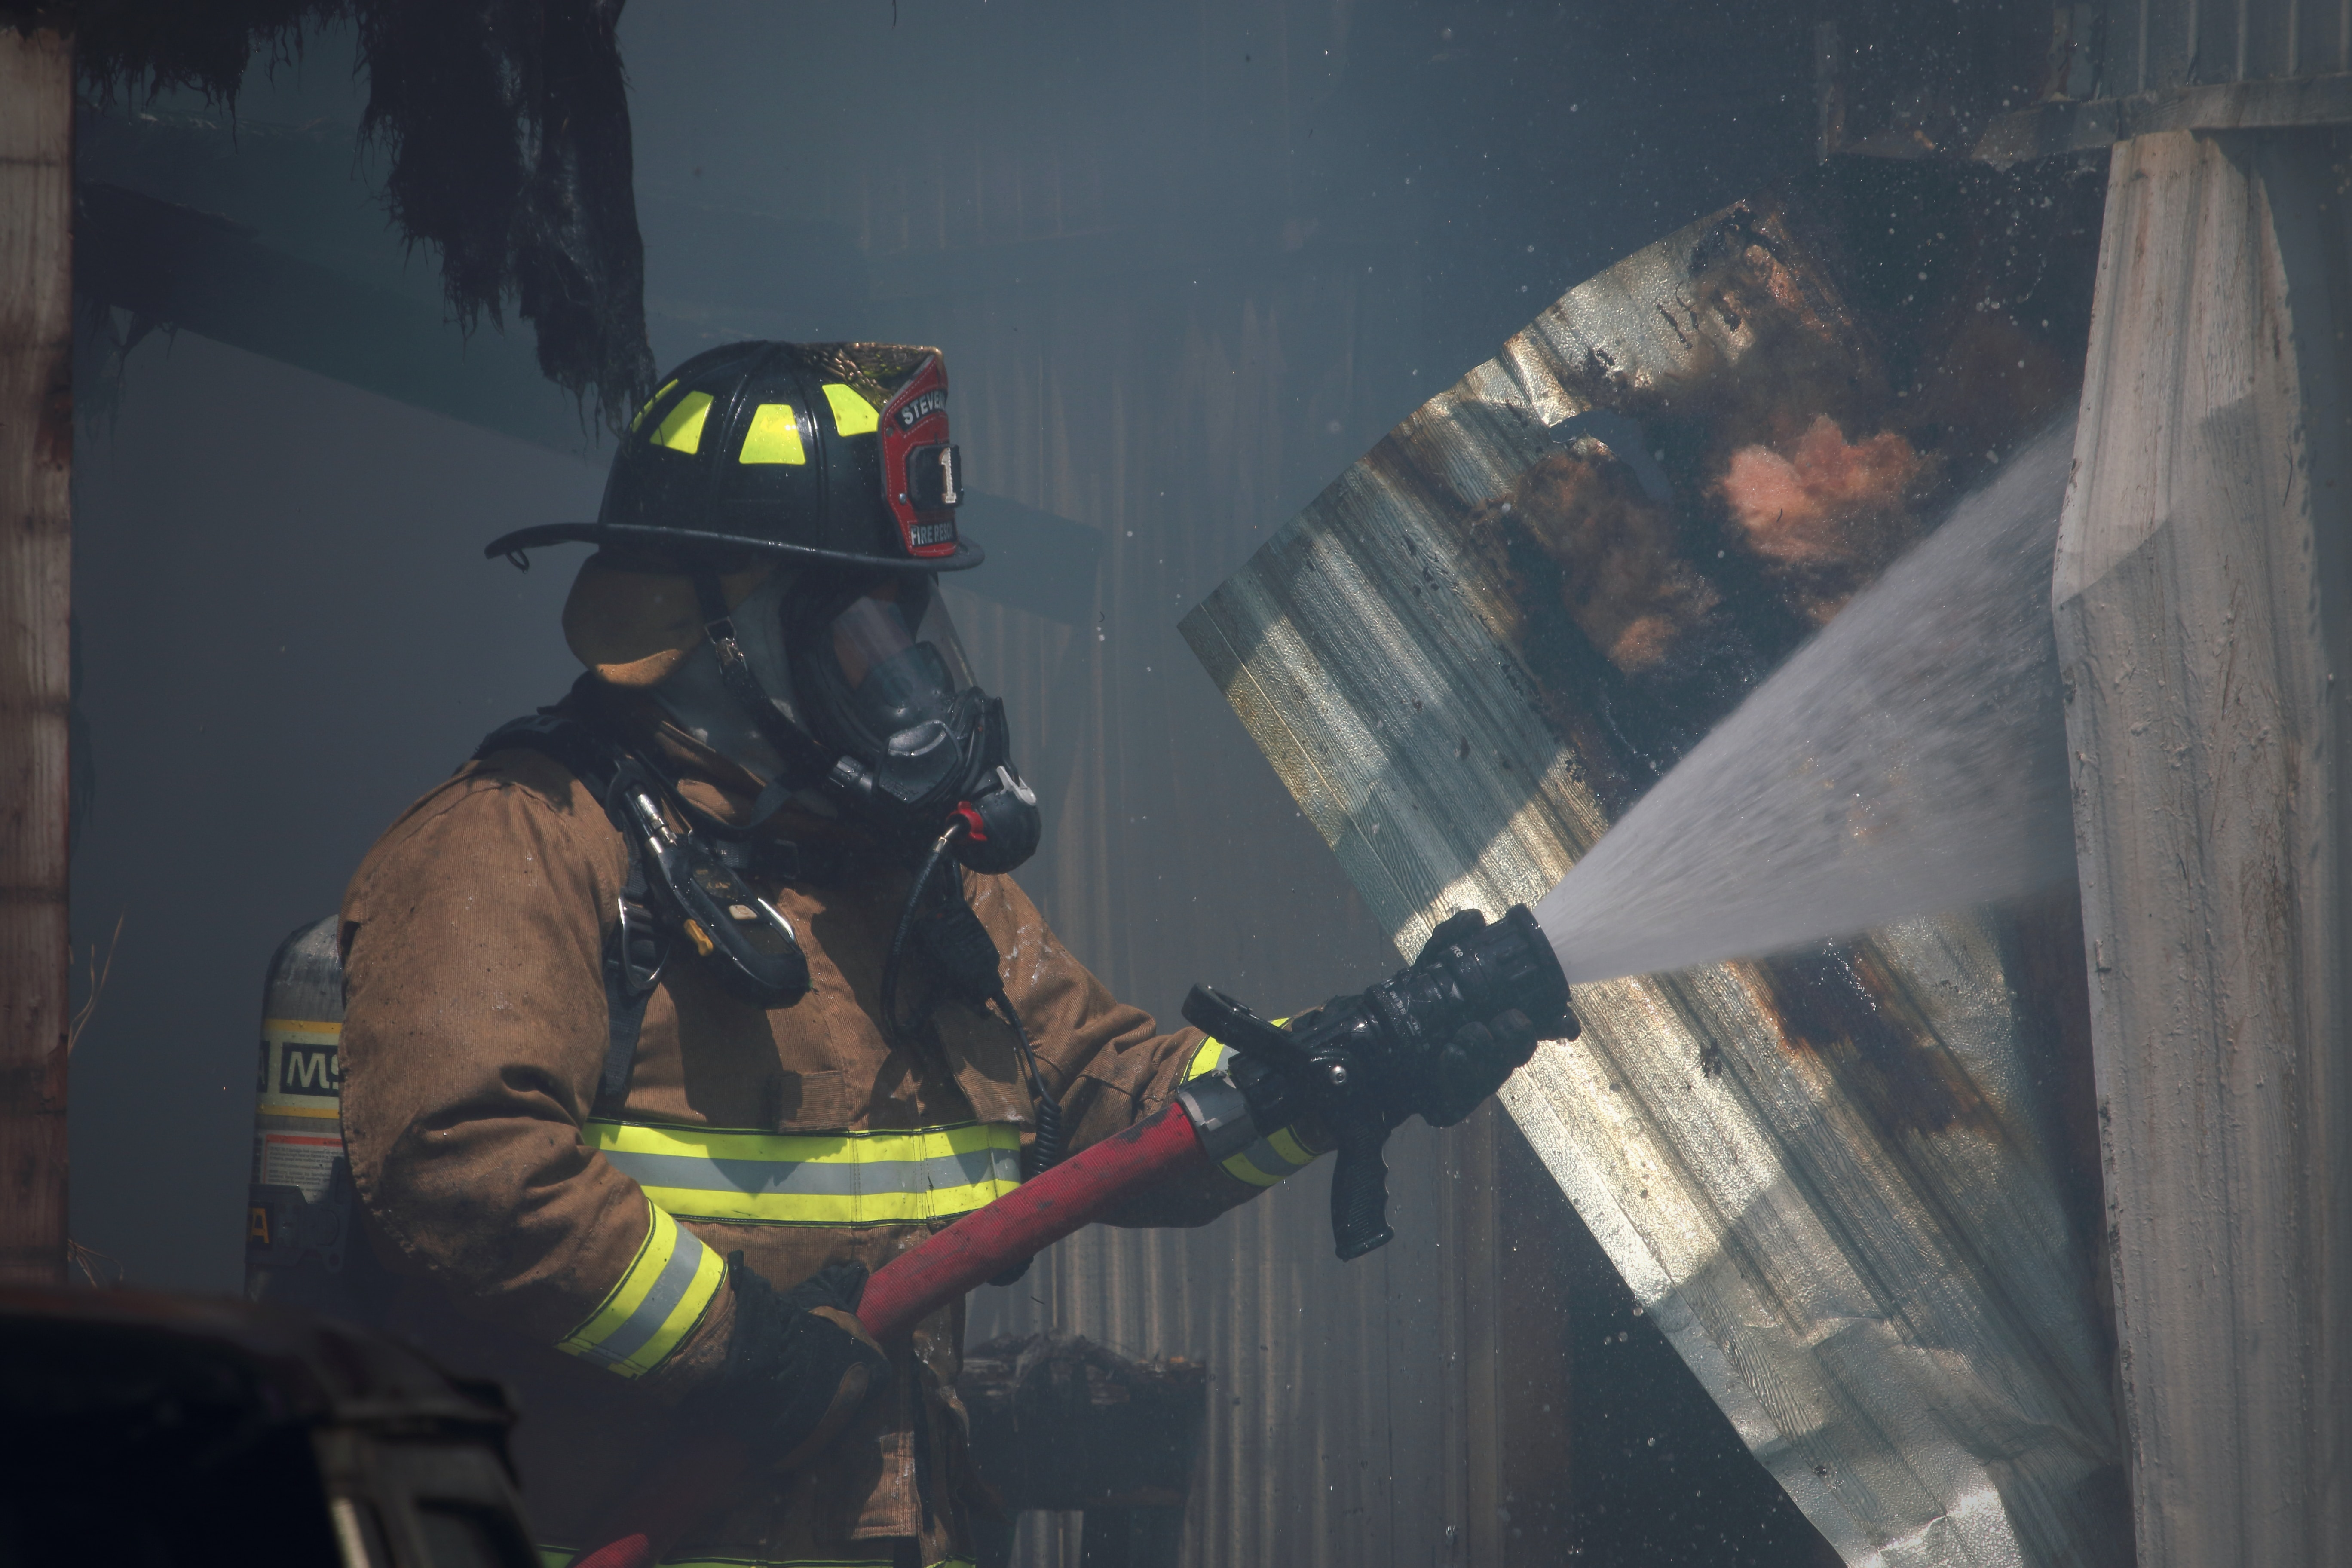 shallow focus photo of firefighter using red water hose